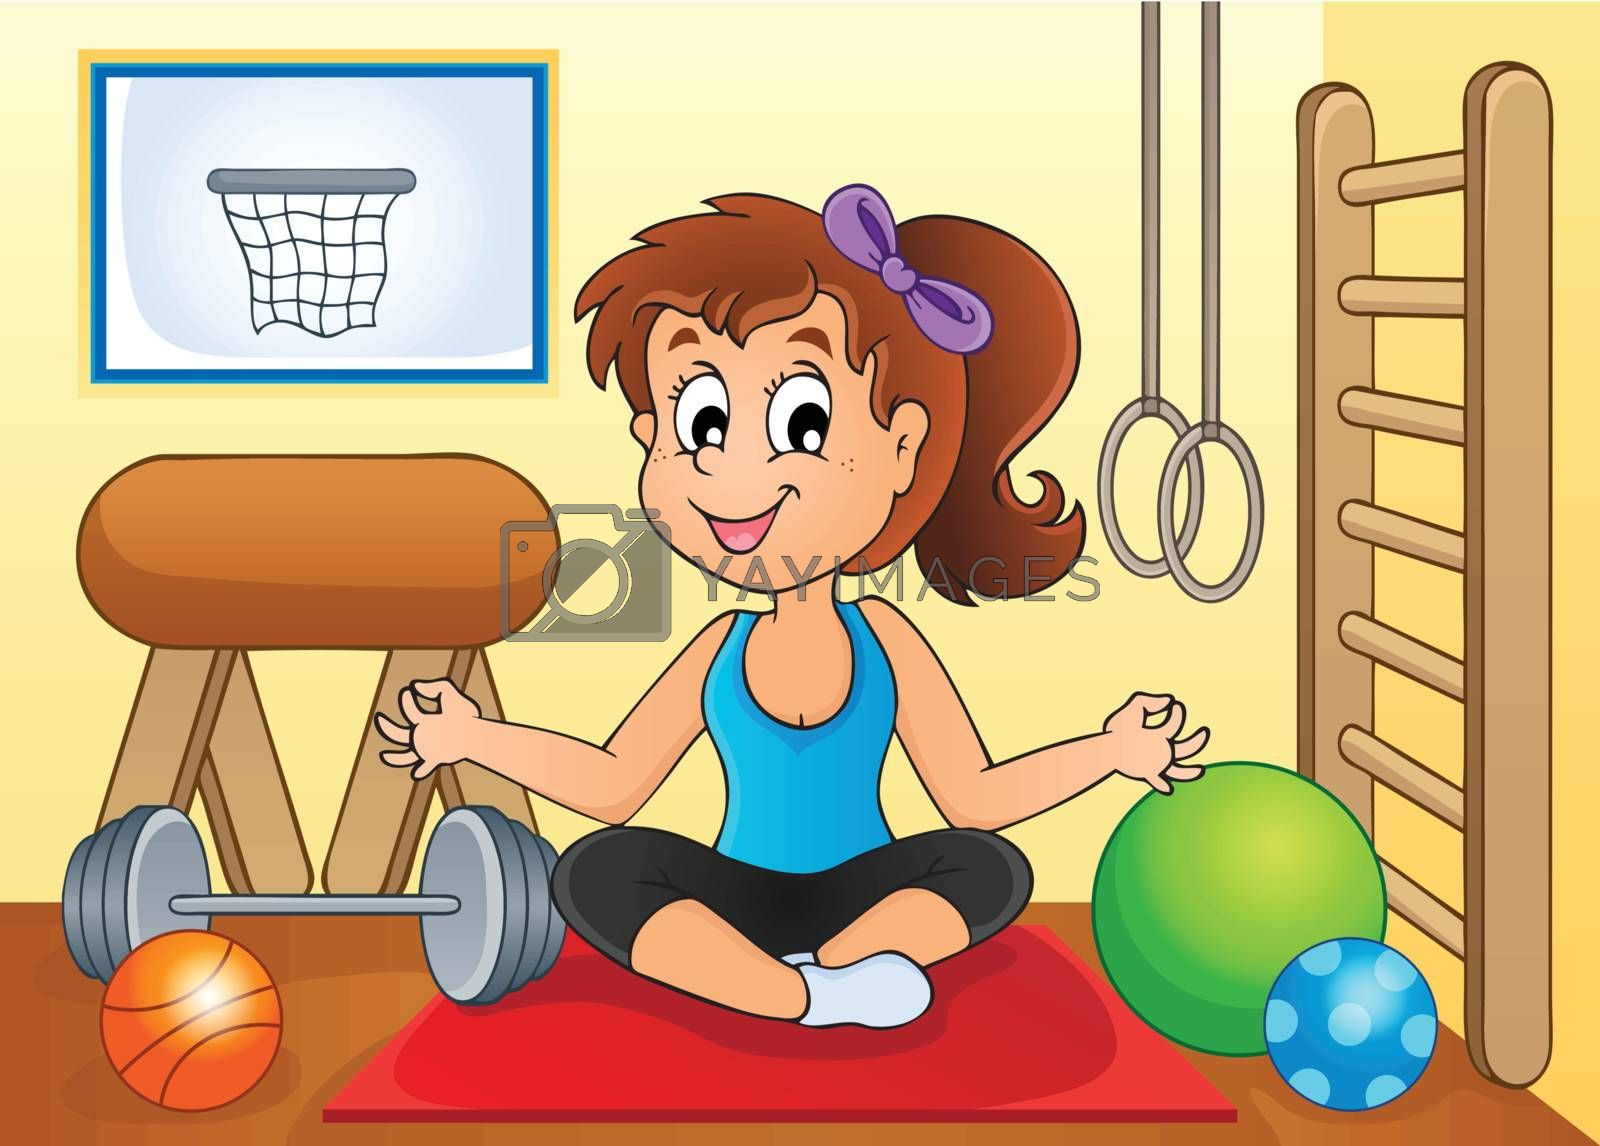 Sport and gym theme image 2 - eps10 vector illustration.